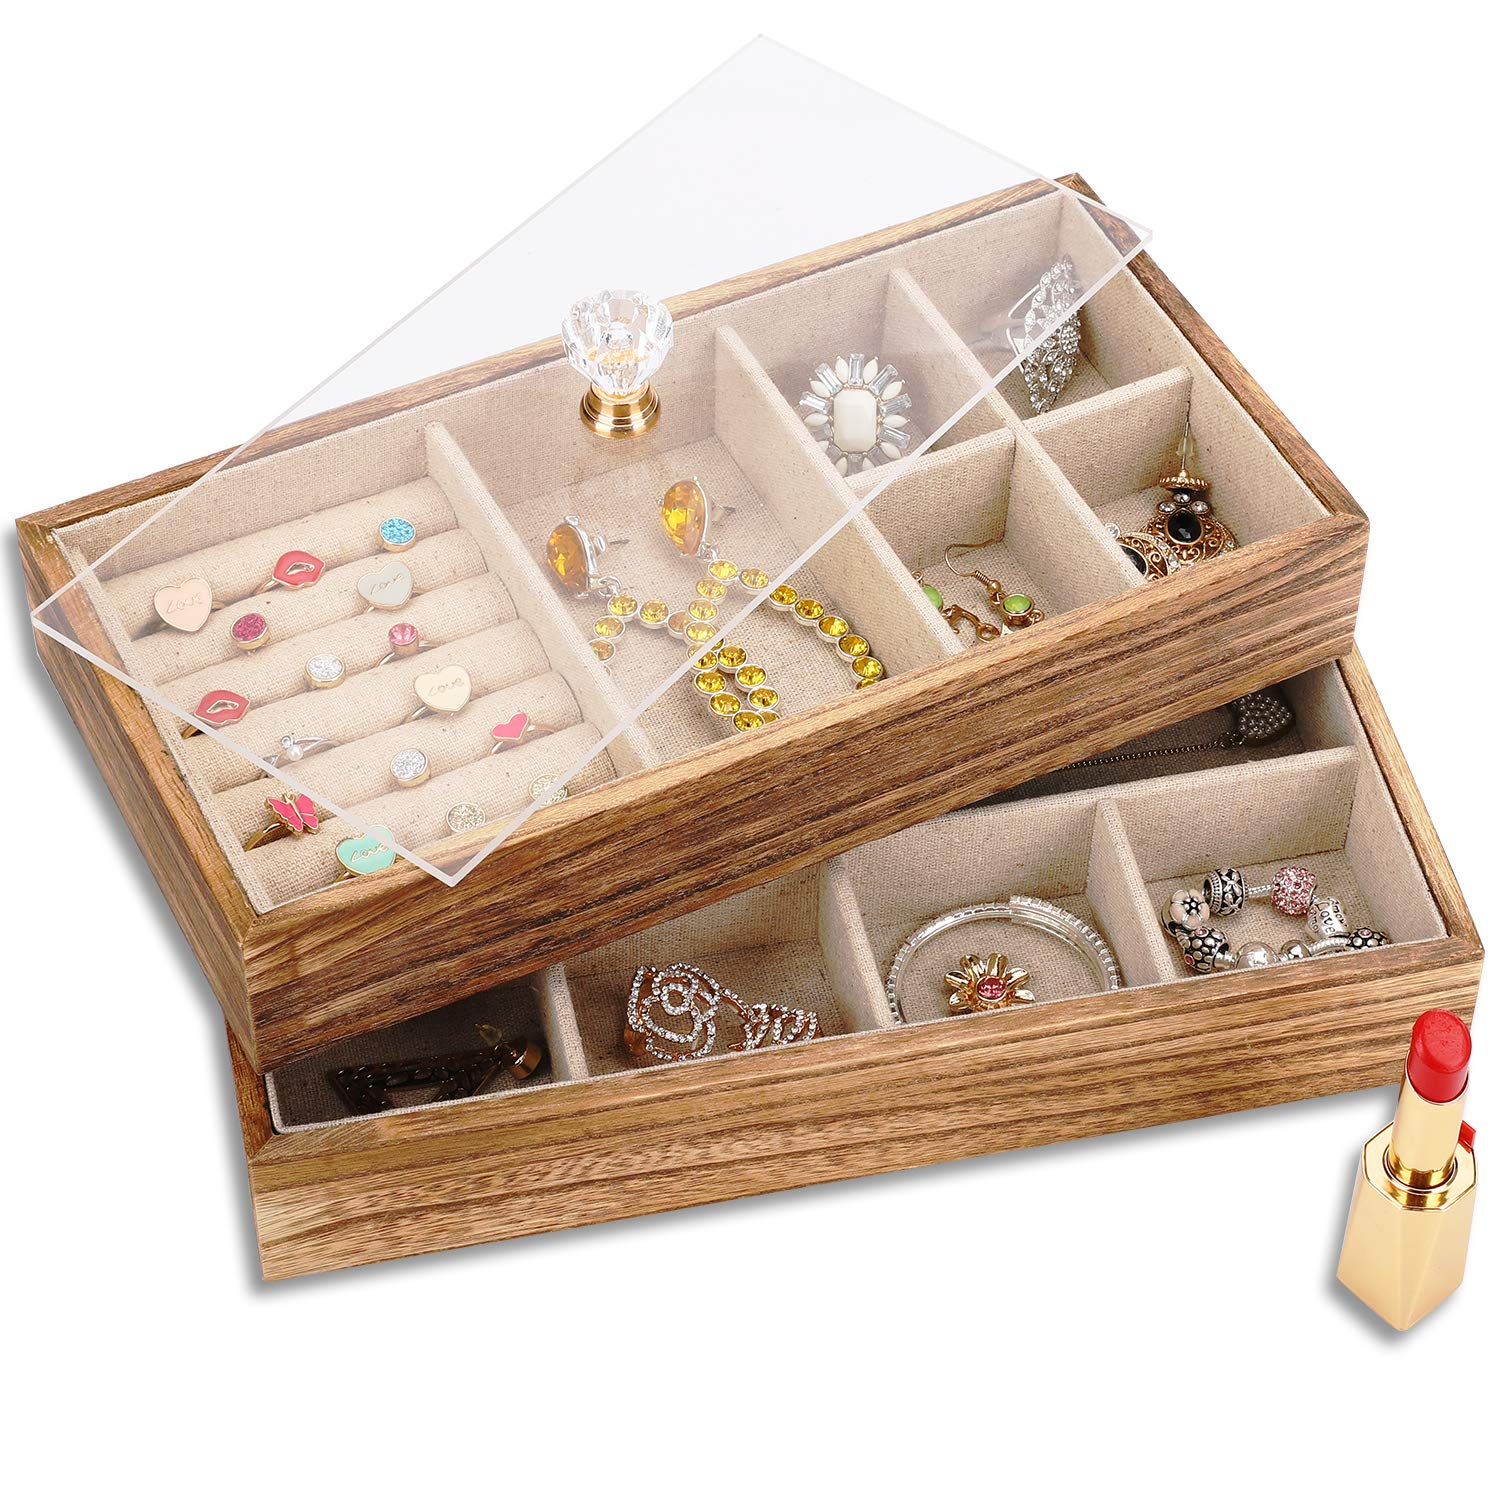 Keebofly Jewelry Tray with Lid Rustic Wood Jewelry Organizer Box Display with 2 Stackable Layers Jewelry Holder for Earrings Rings Necklaces - Carbonized Black